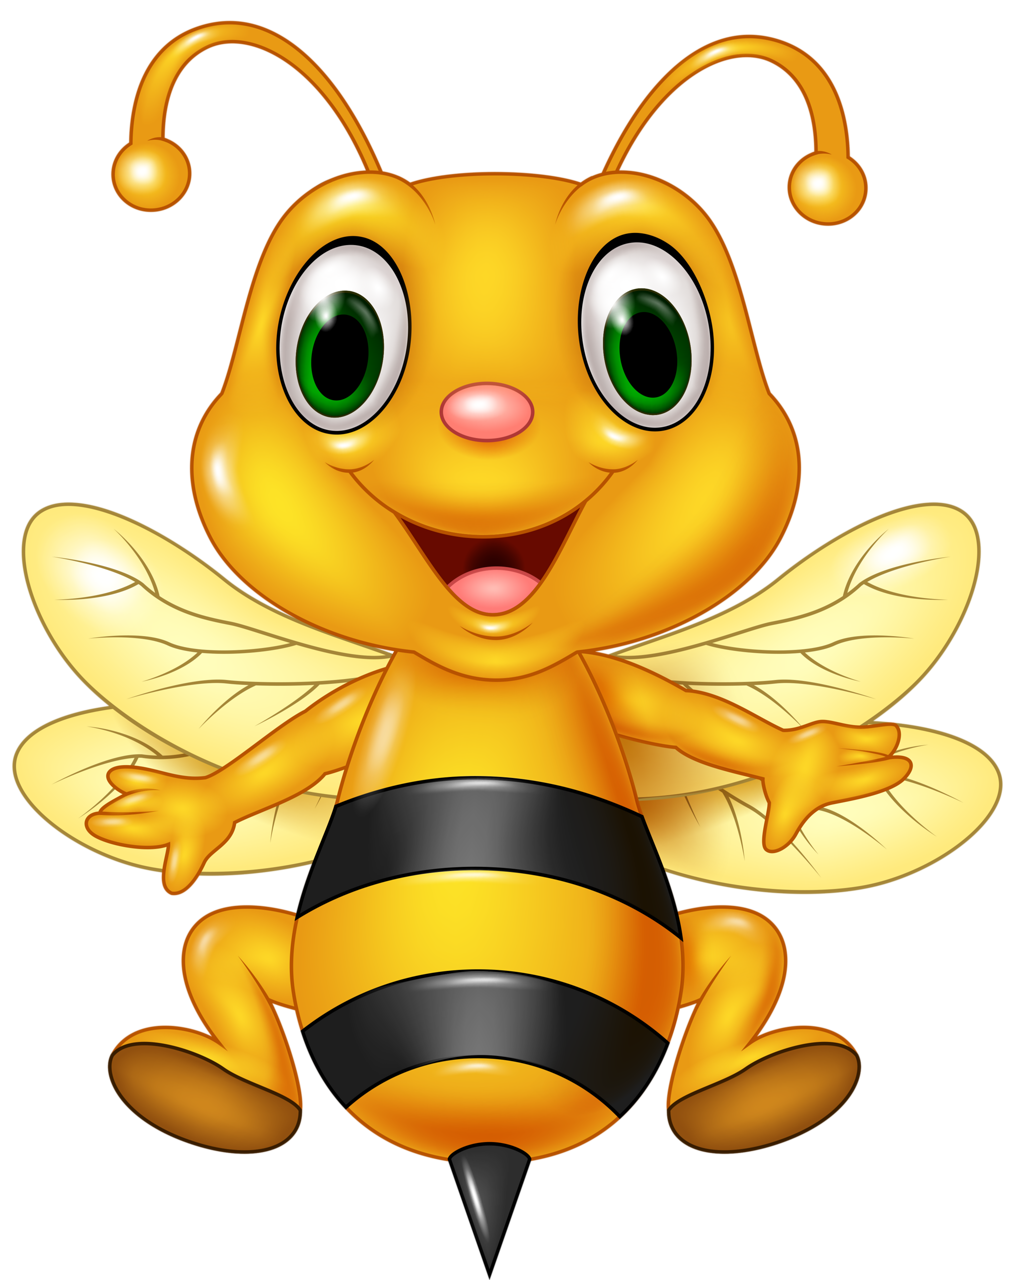 Wasp vector angry cartoon. Funny animals png bees